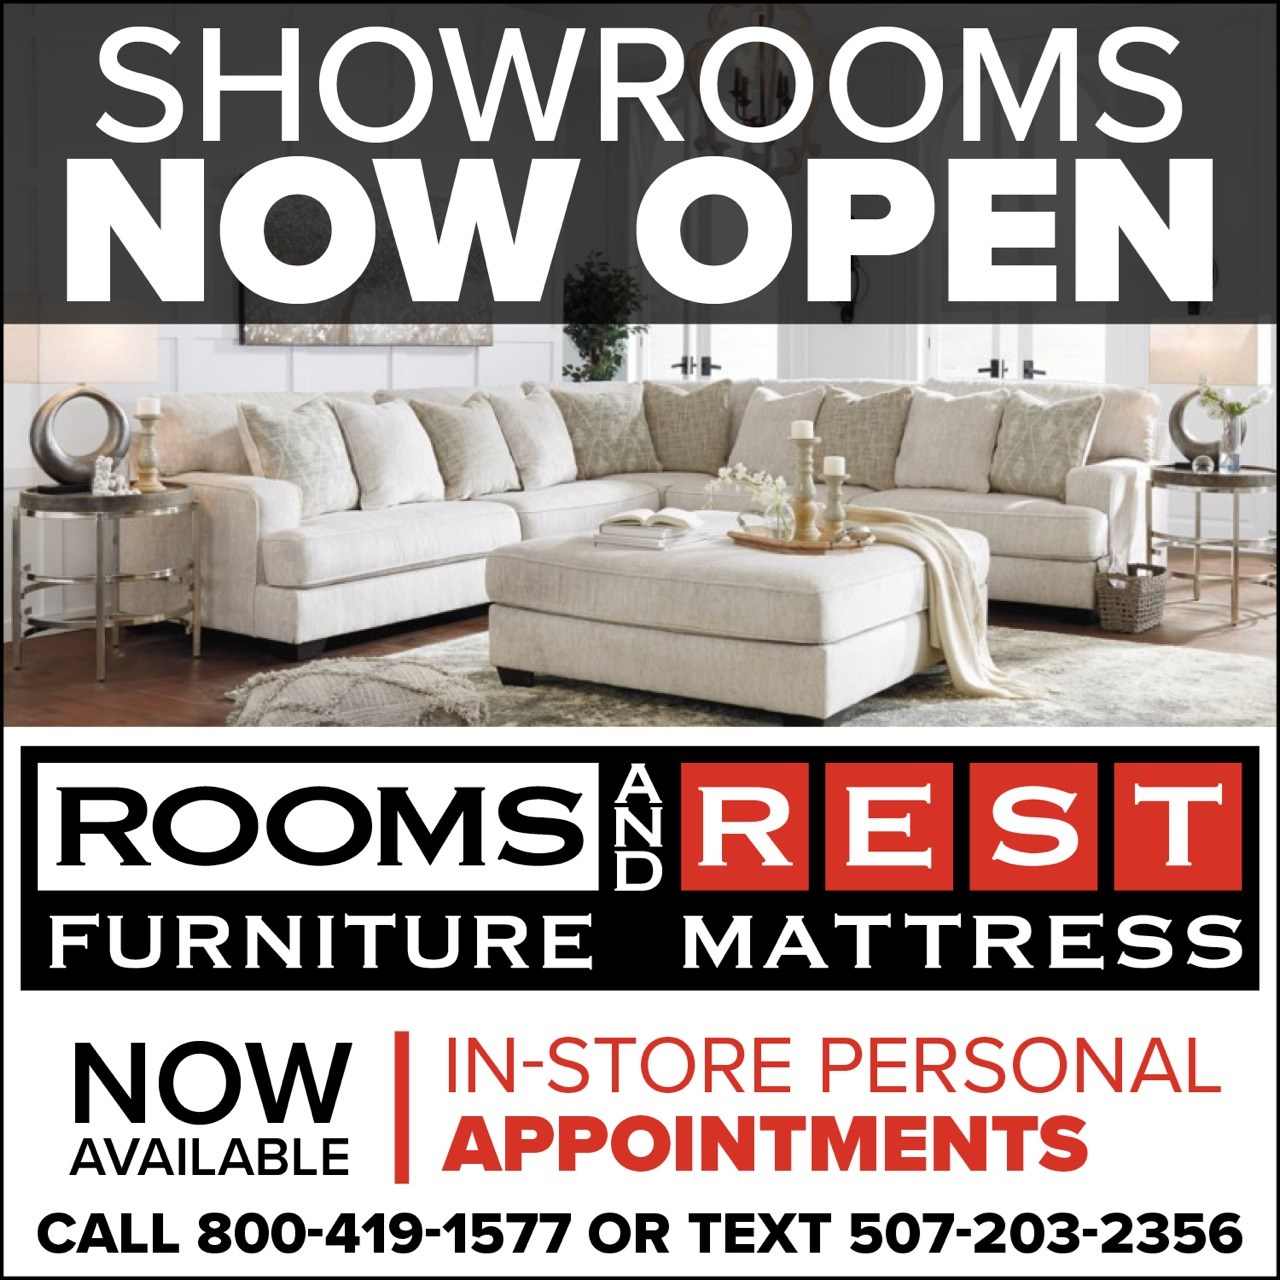 Showrooms Now Open